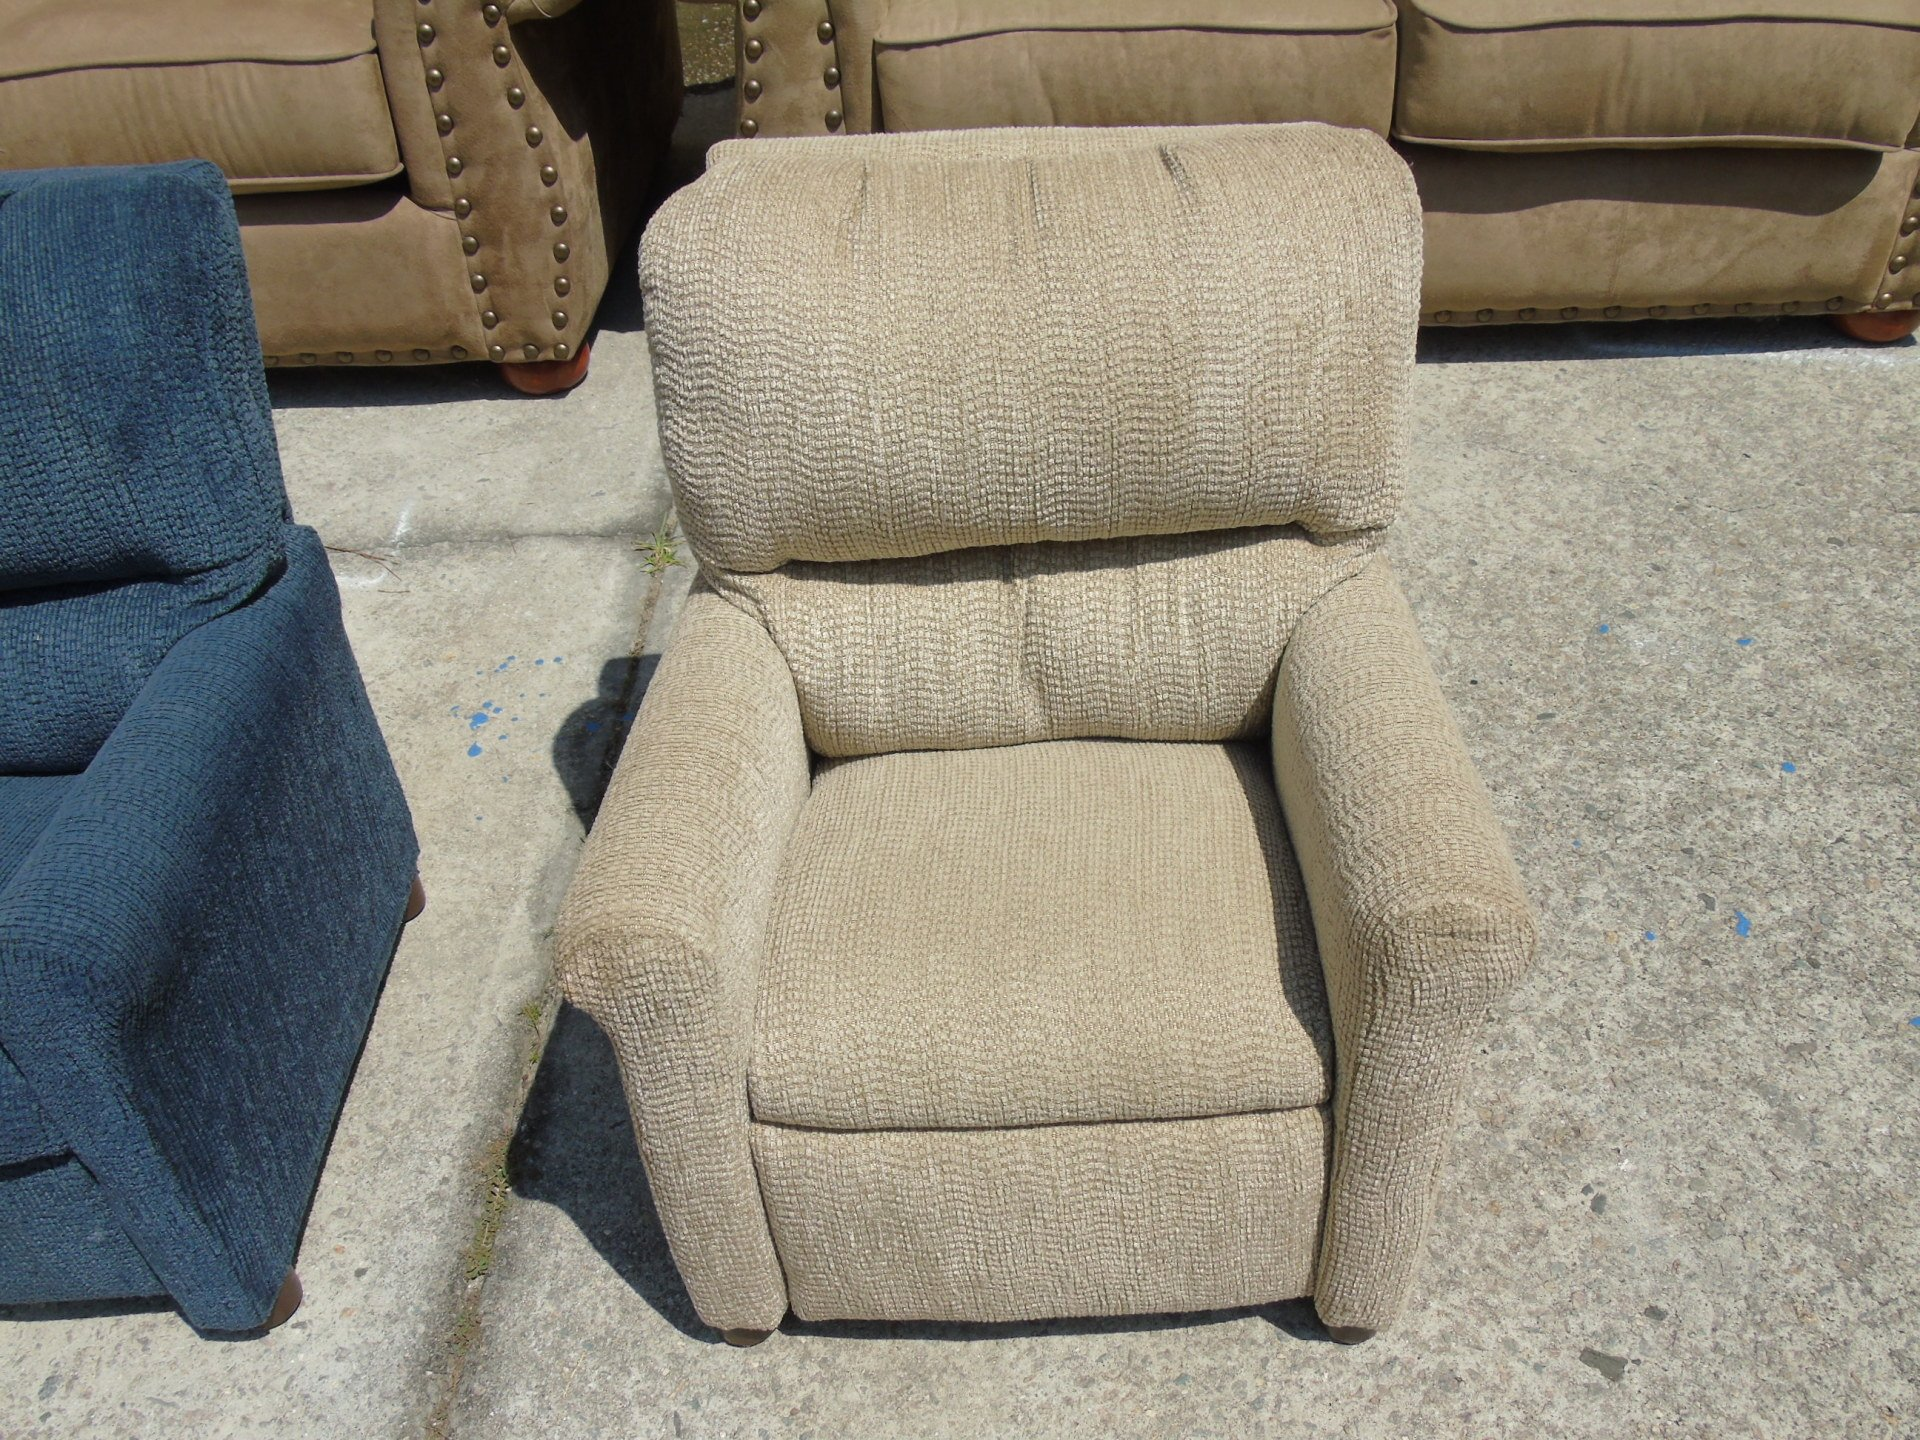 navana revolving chair price in bangladesh swivel couch living room furniture new and nearly thrift shop